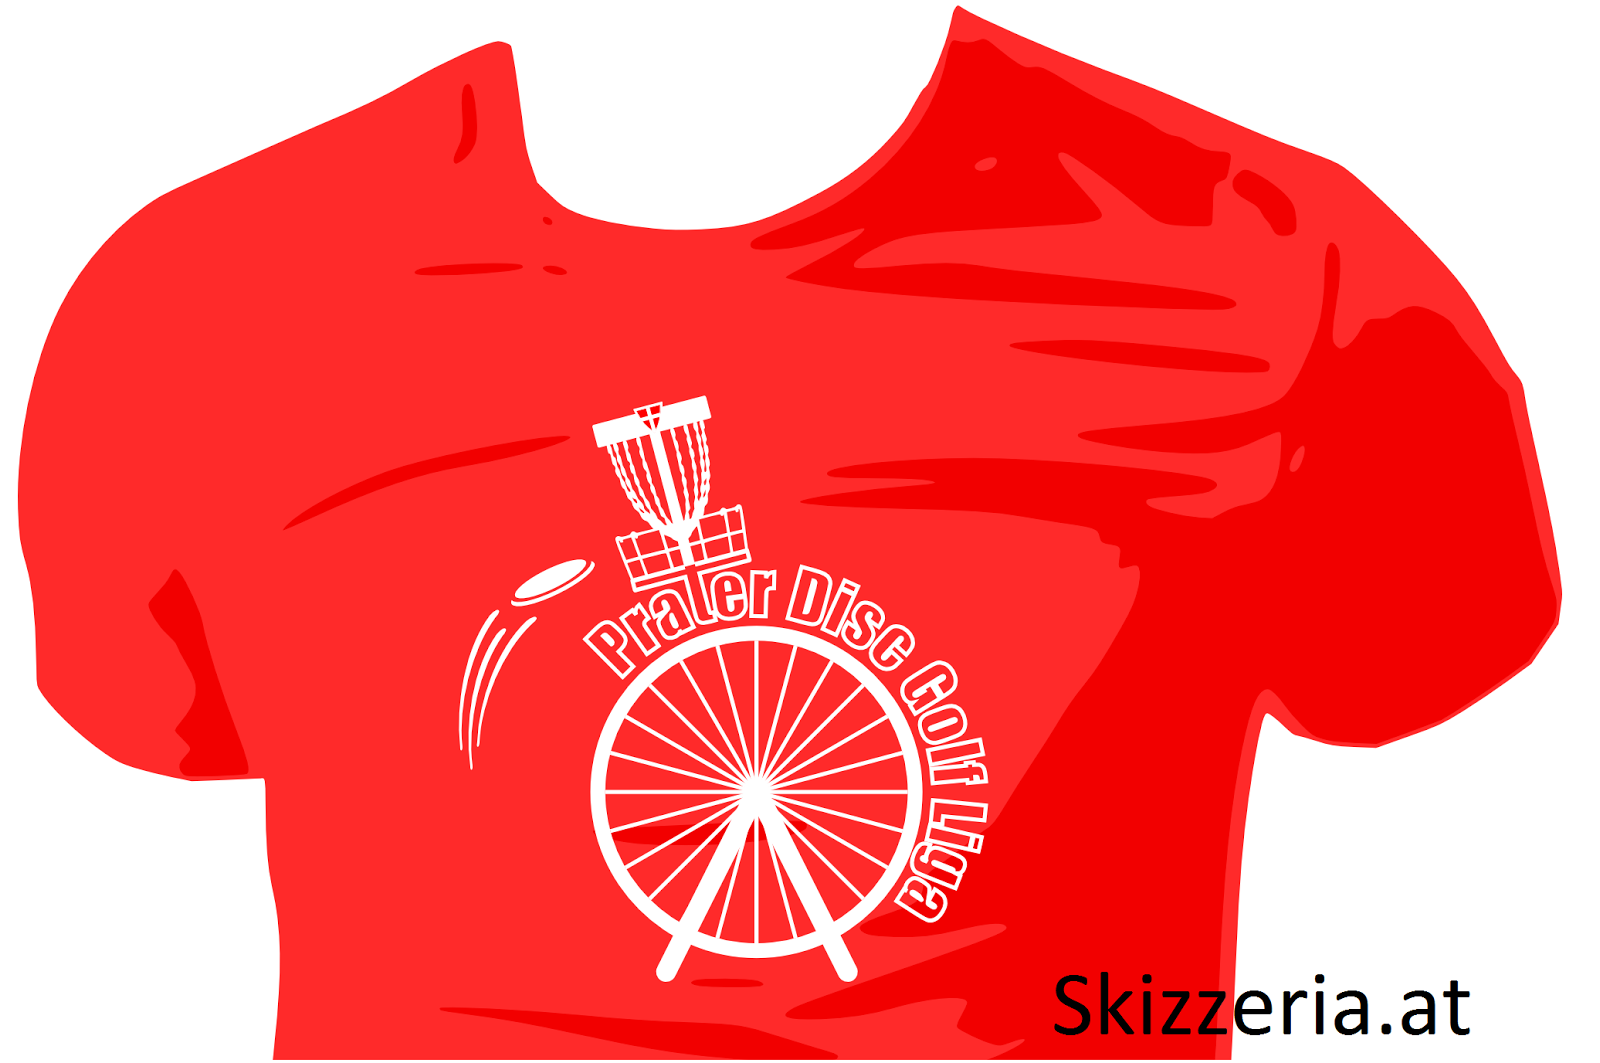 Skizzeria At Designfabrik Disc Golf Shirts Fur Die Gute Sache